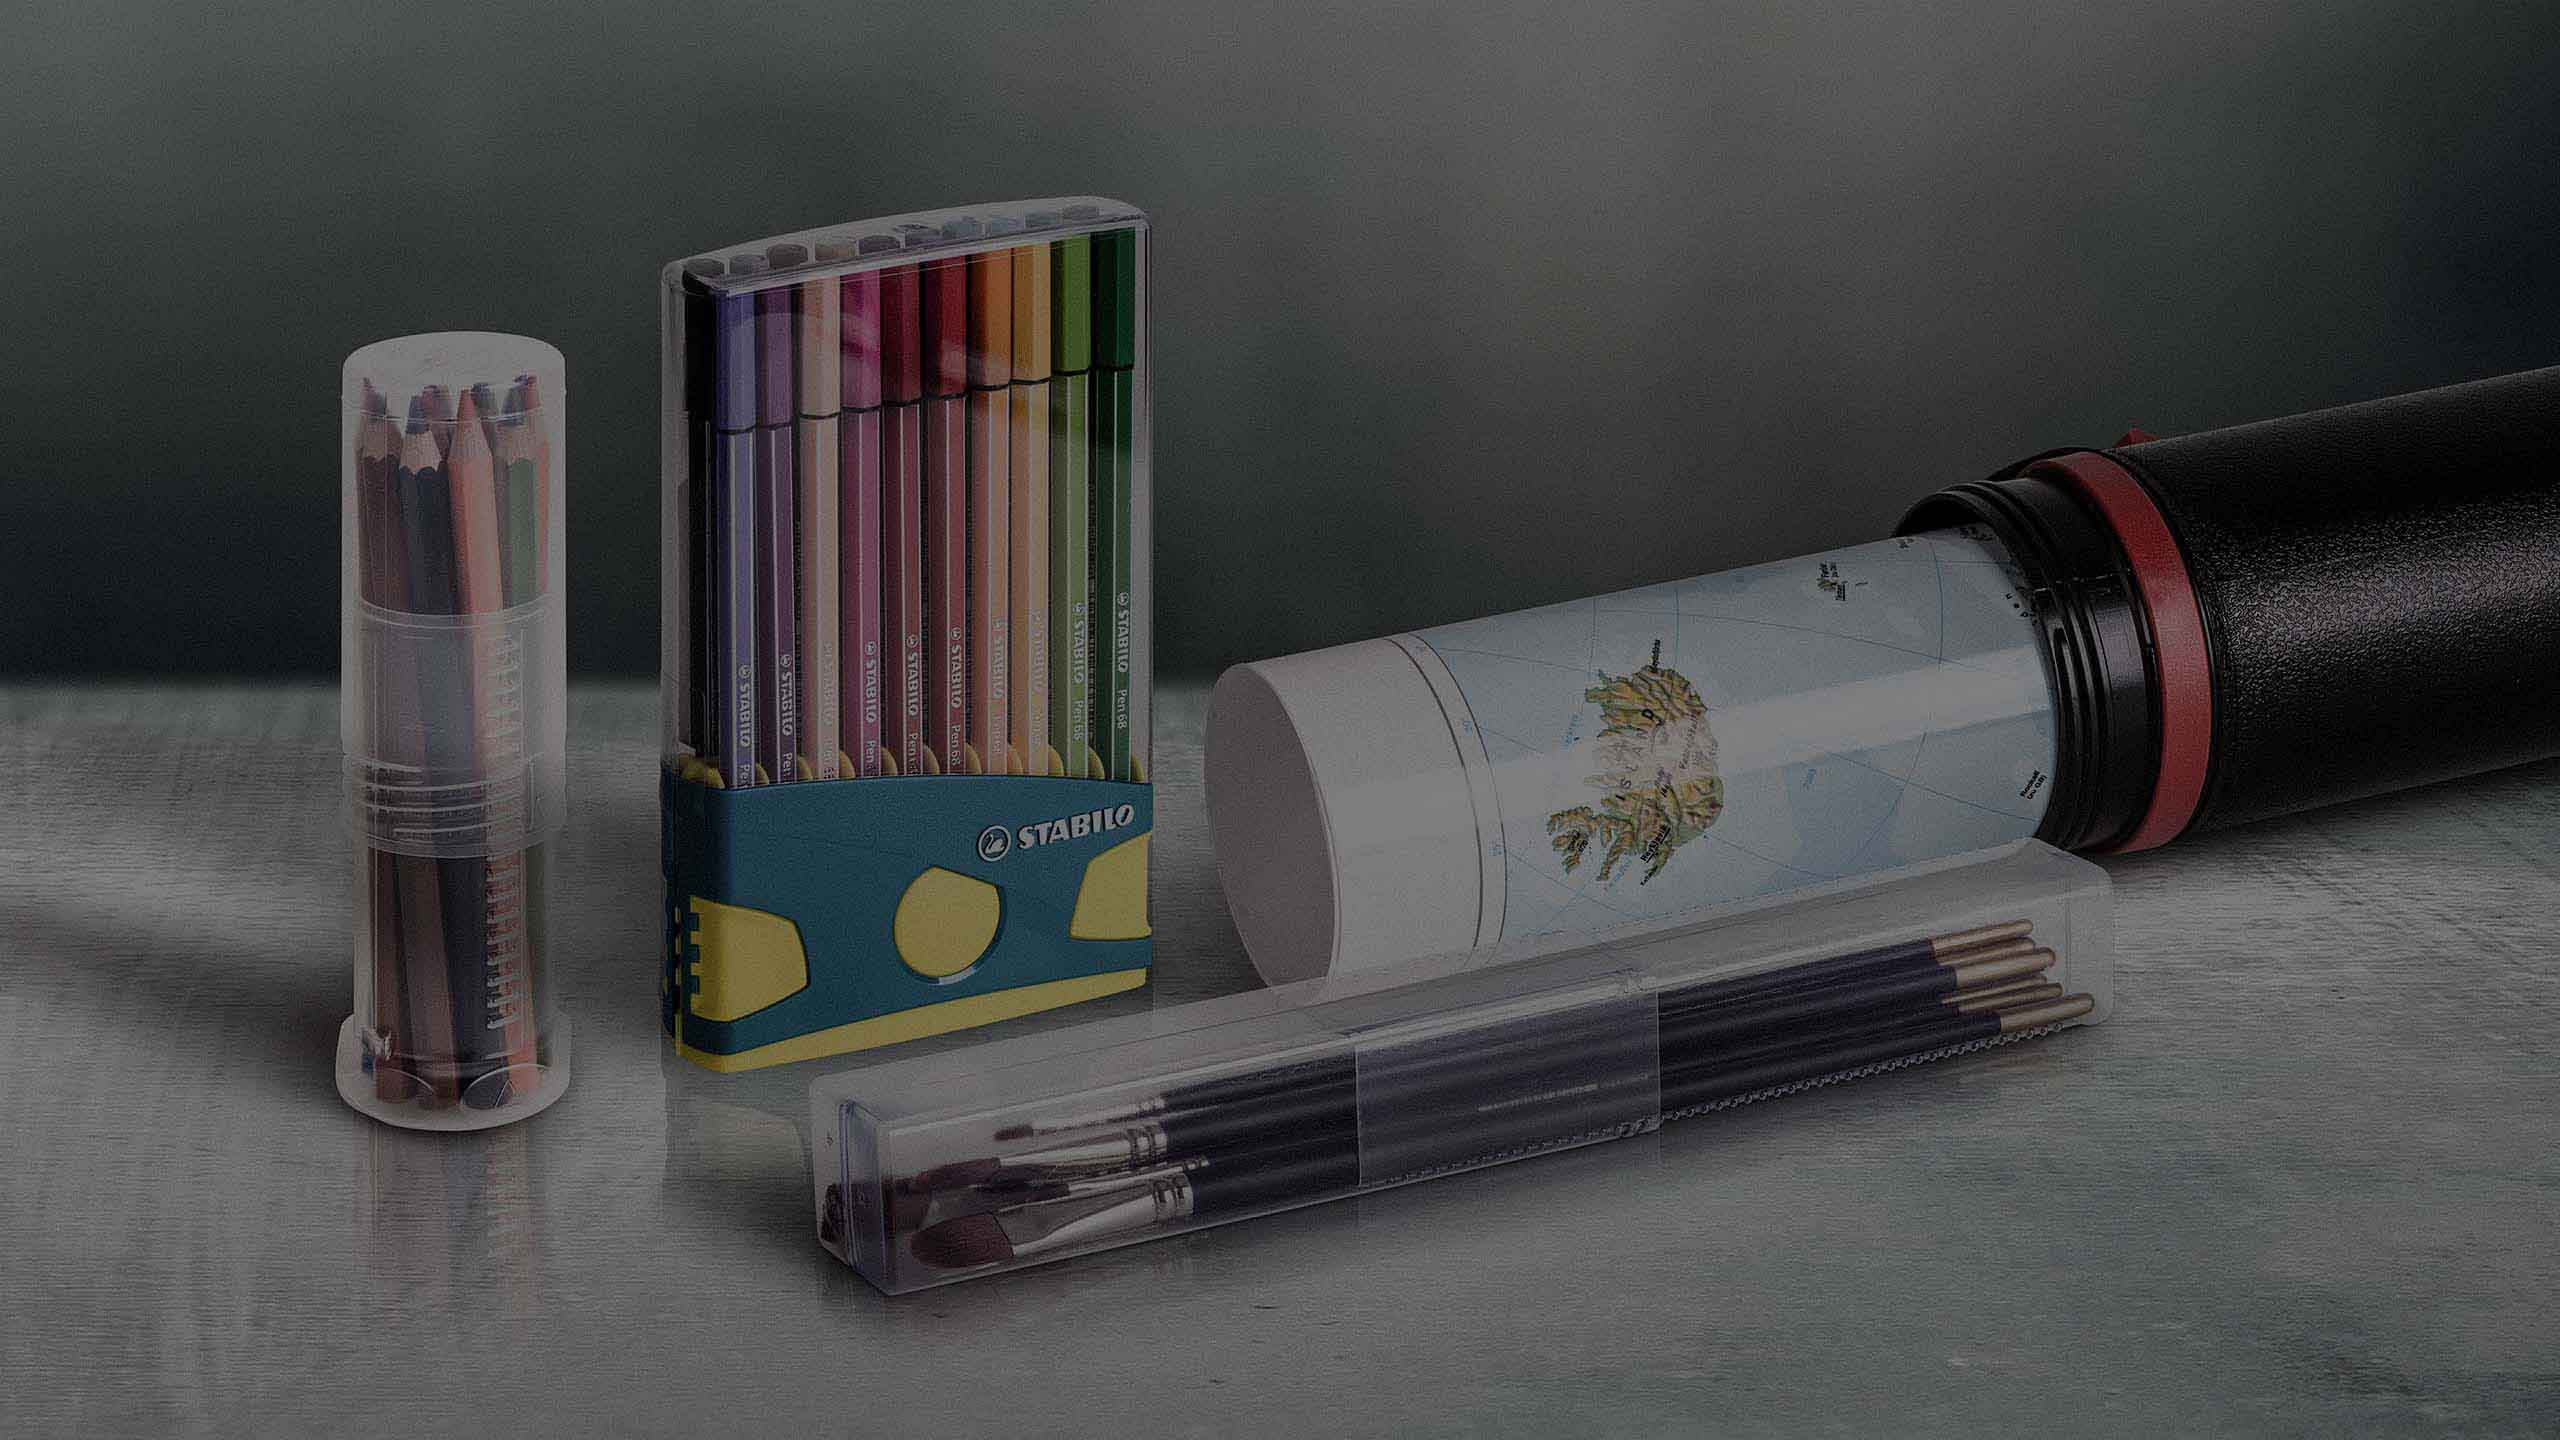 A selection of plastic packaging for stationery and art supplies.